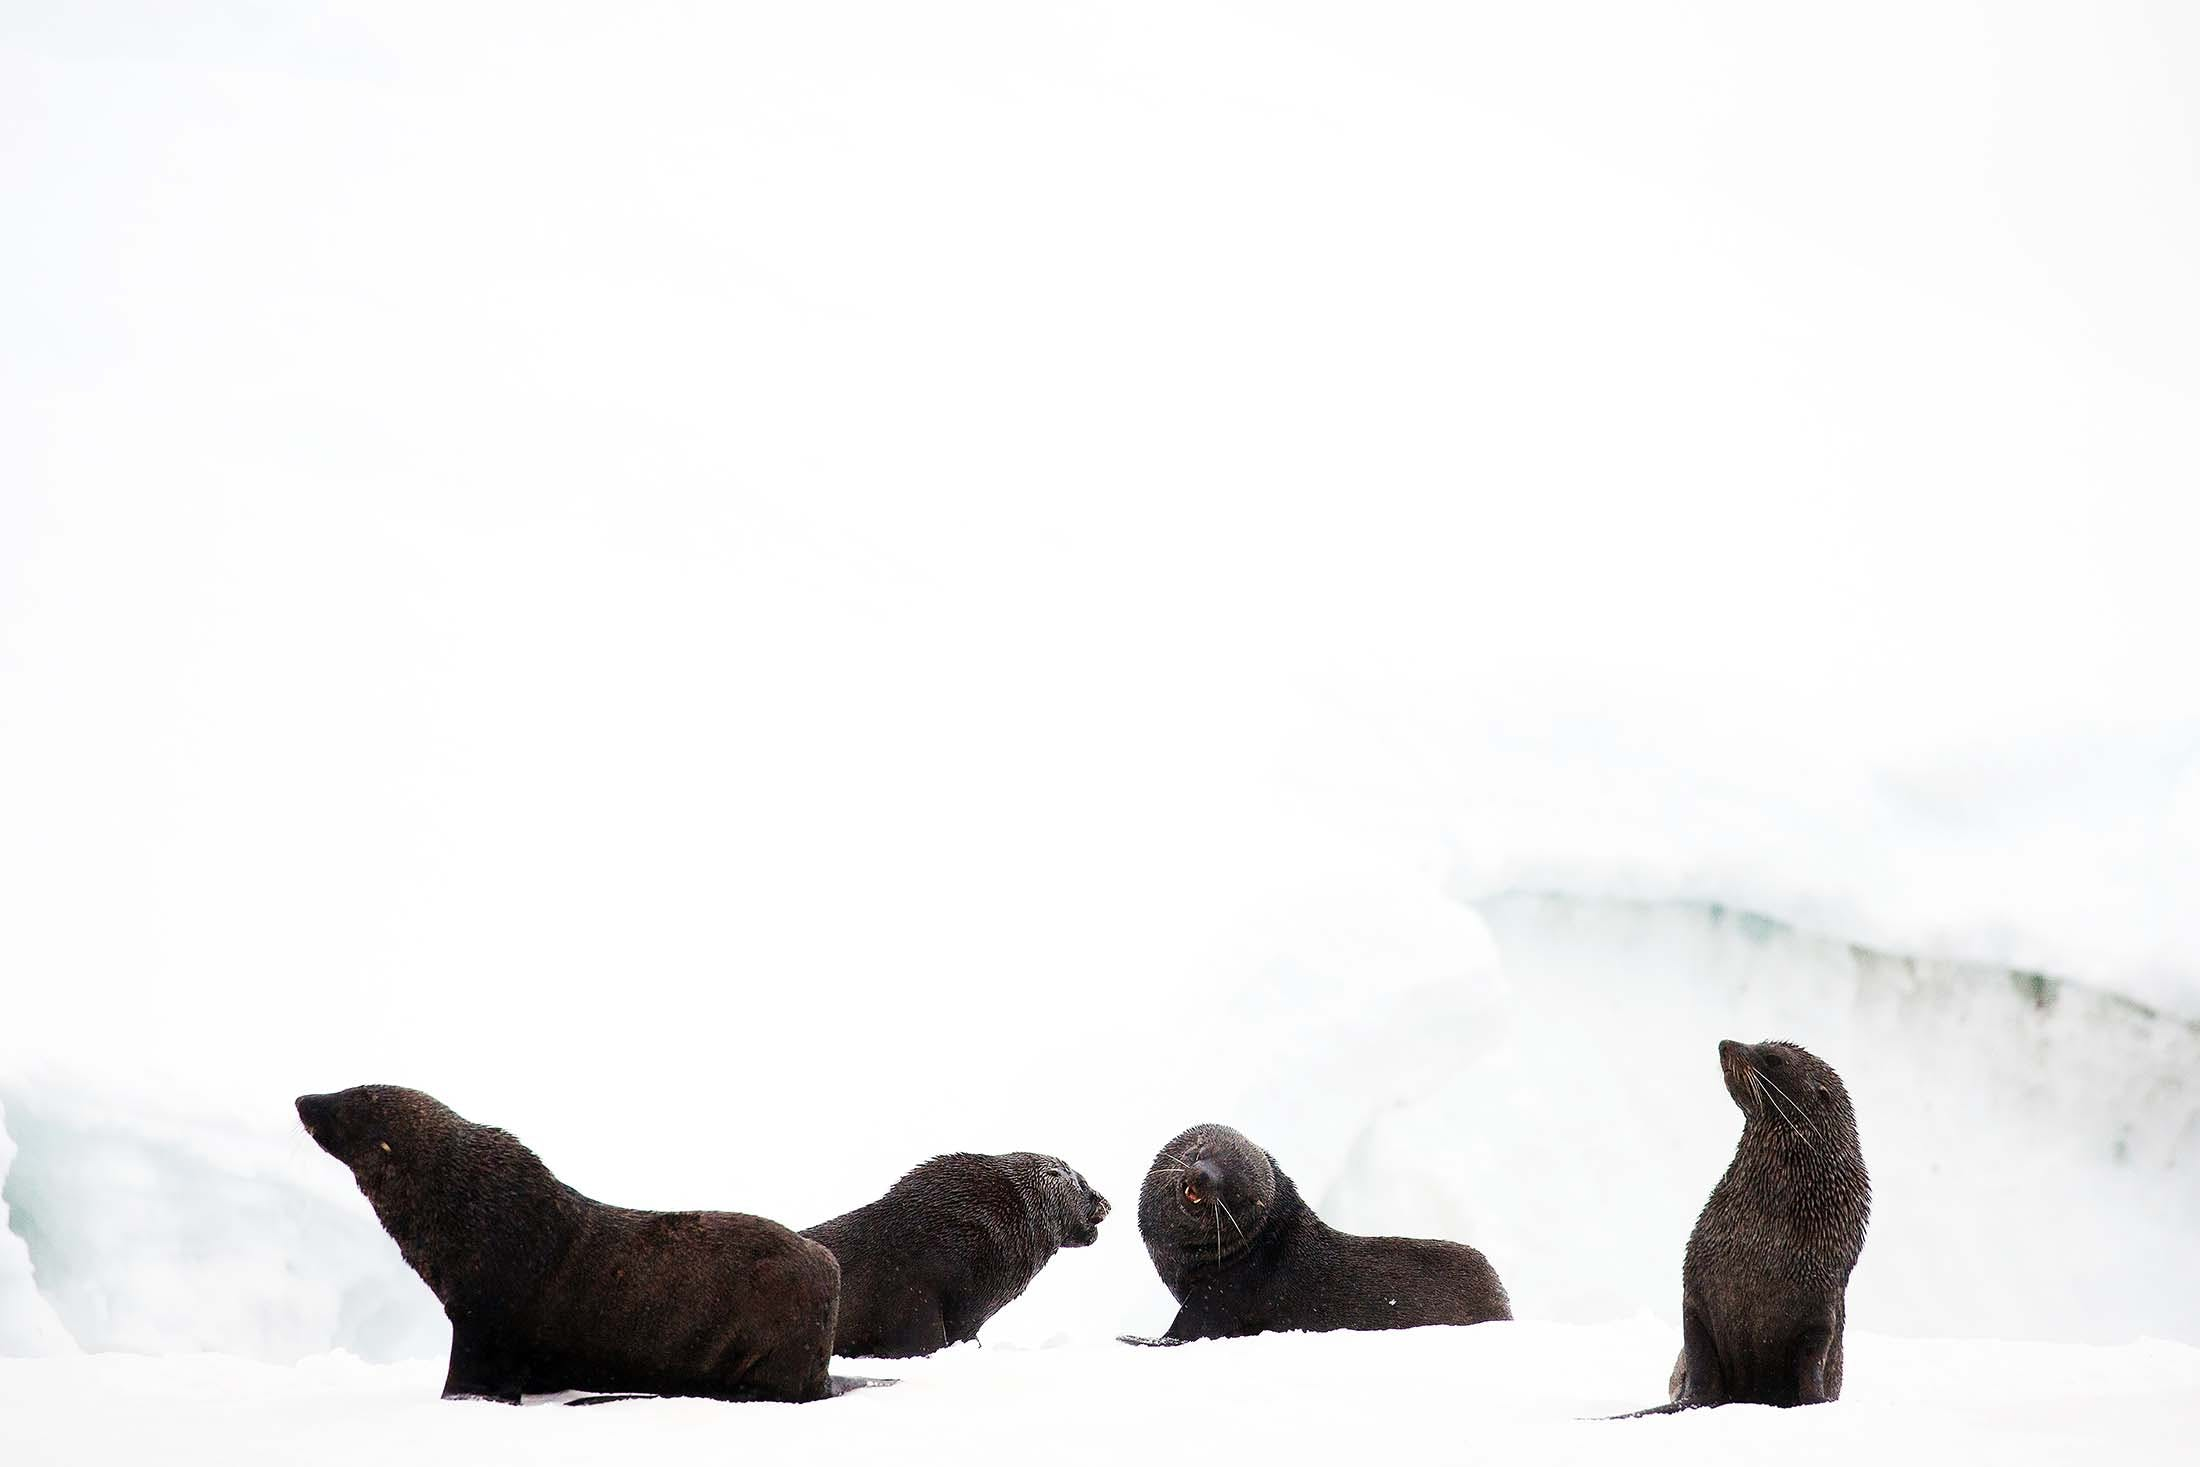 Fur seals, Portal Point, Antarctica